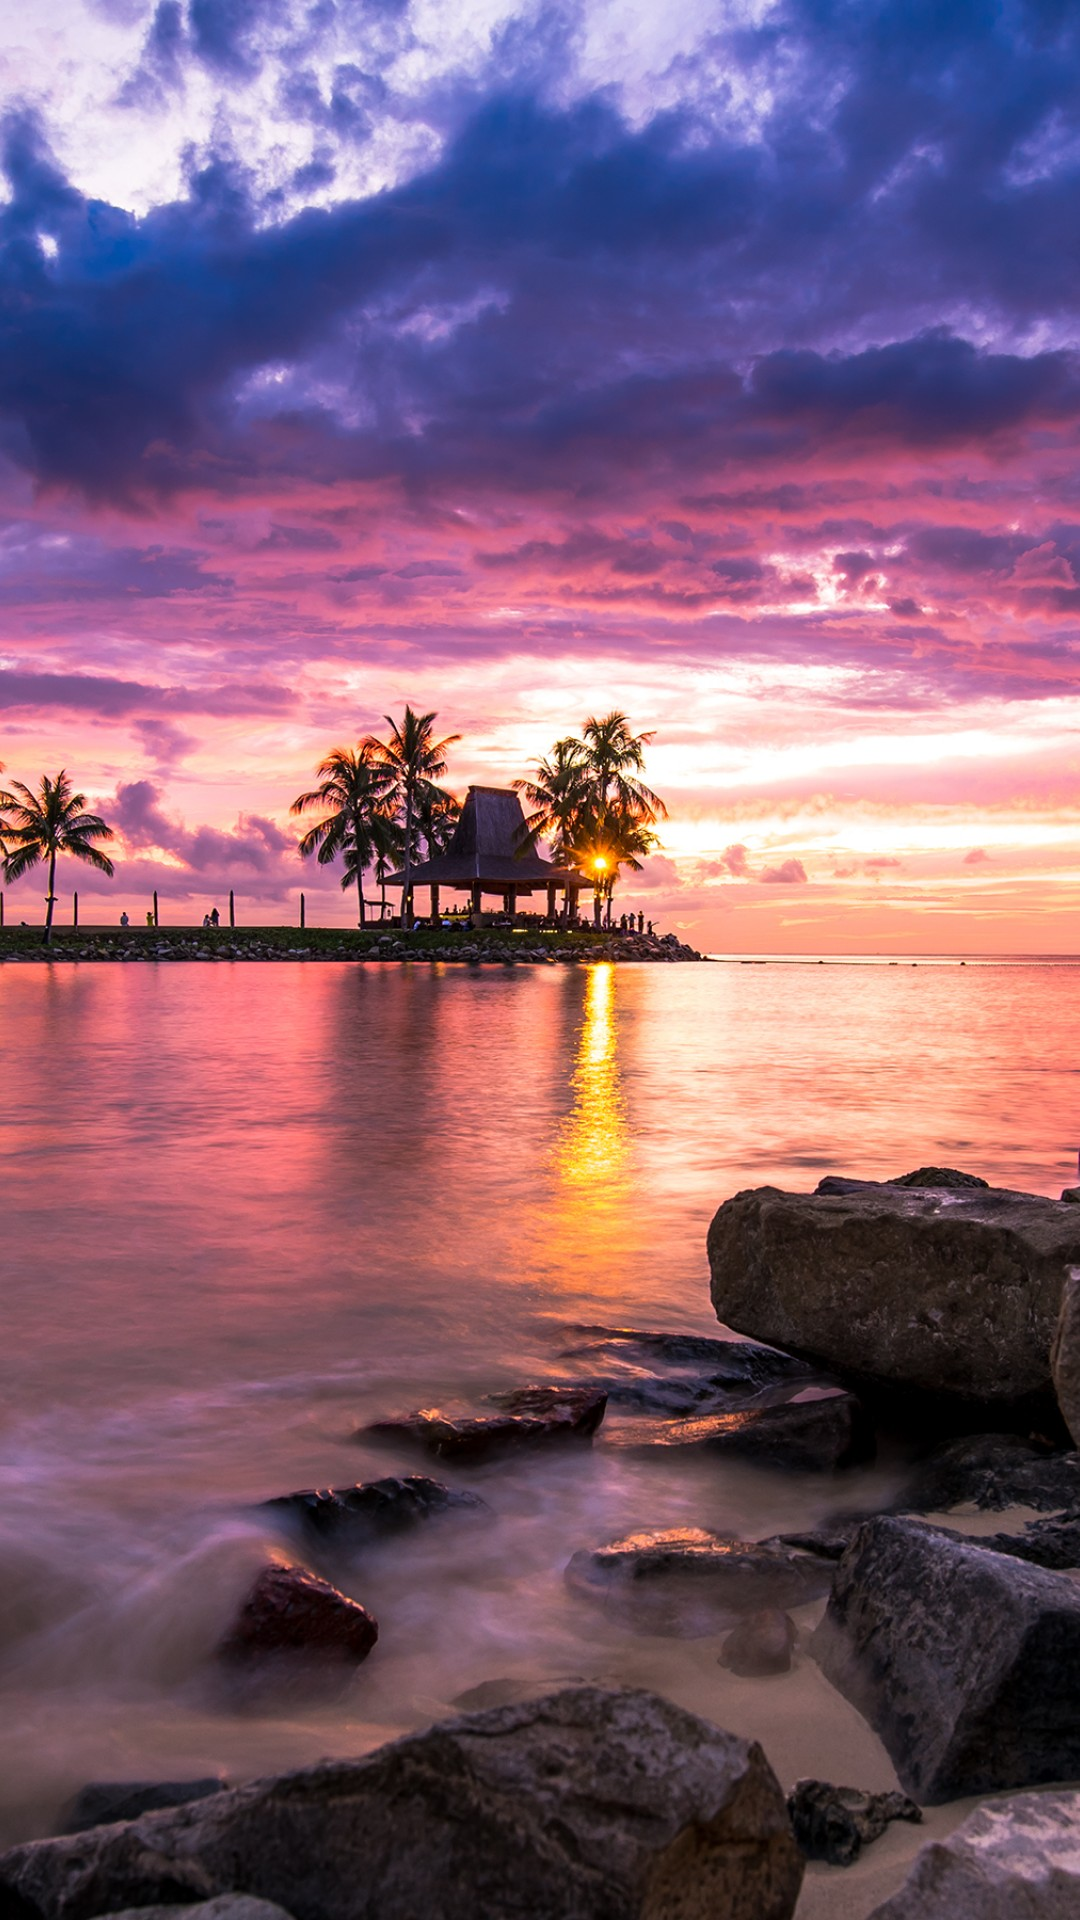 Beach Sunset Wallpaper For Desktop And Mobiles Iphone 6 6s